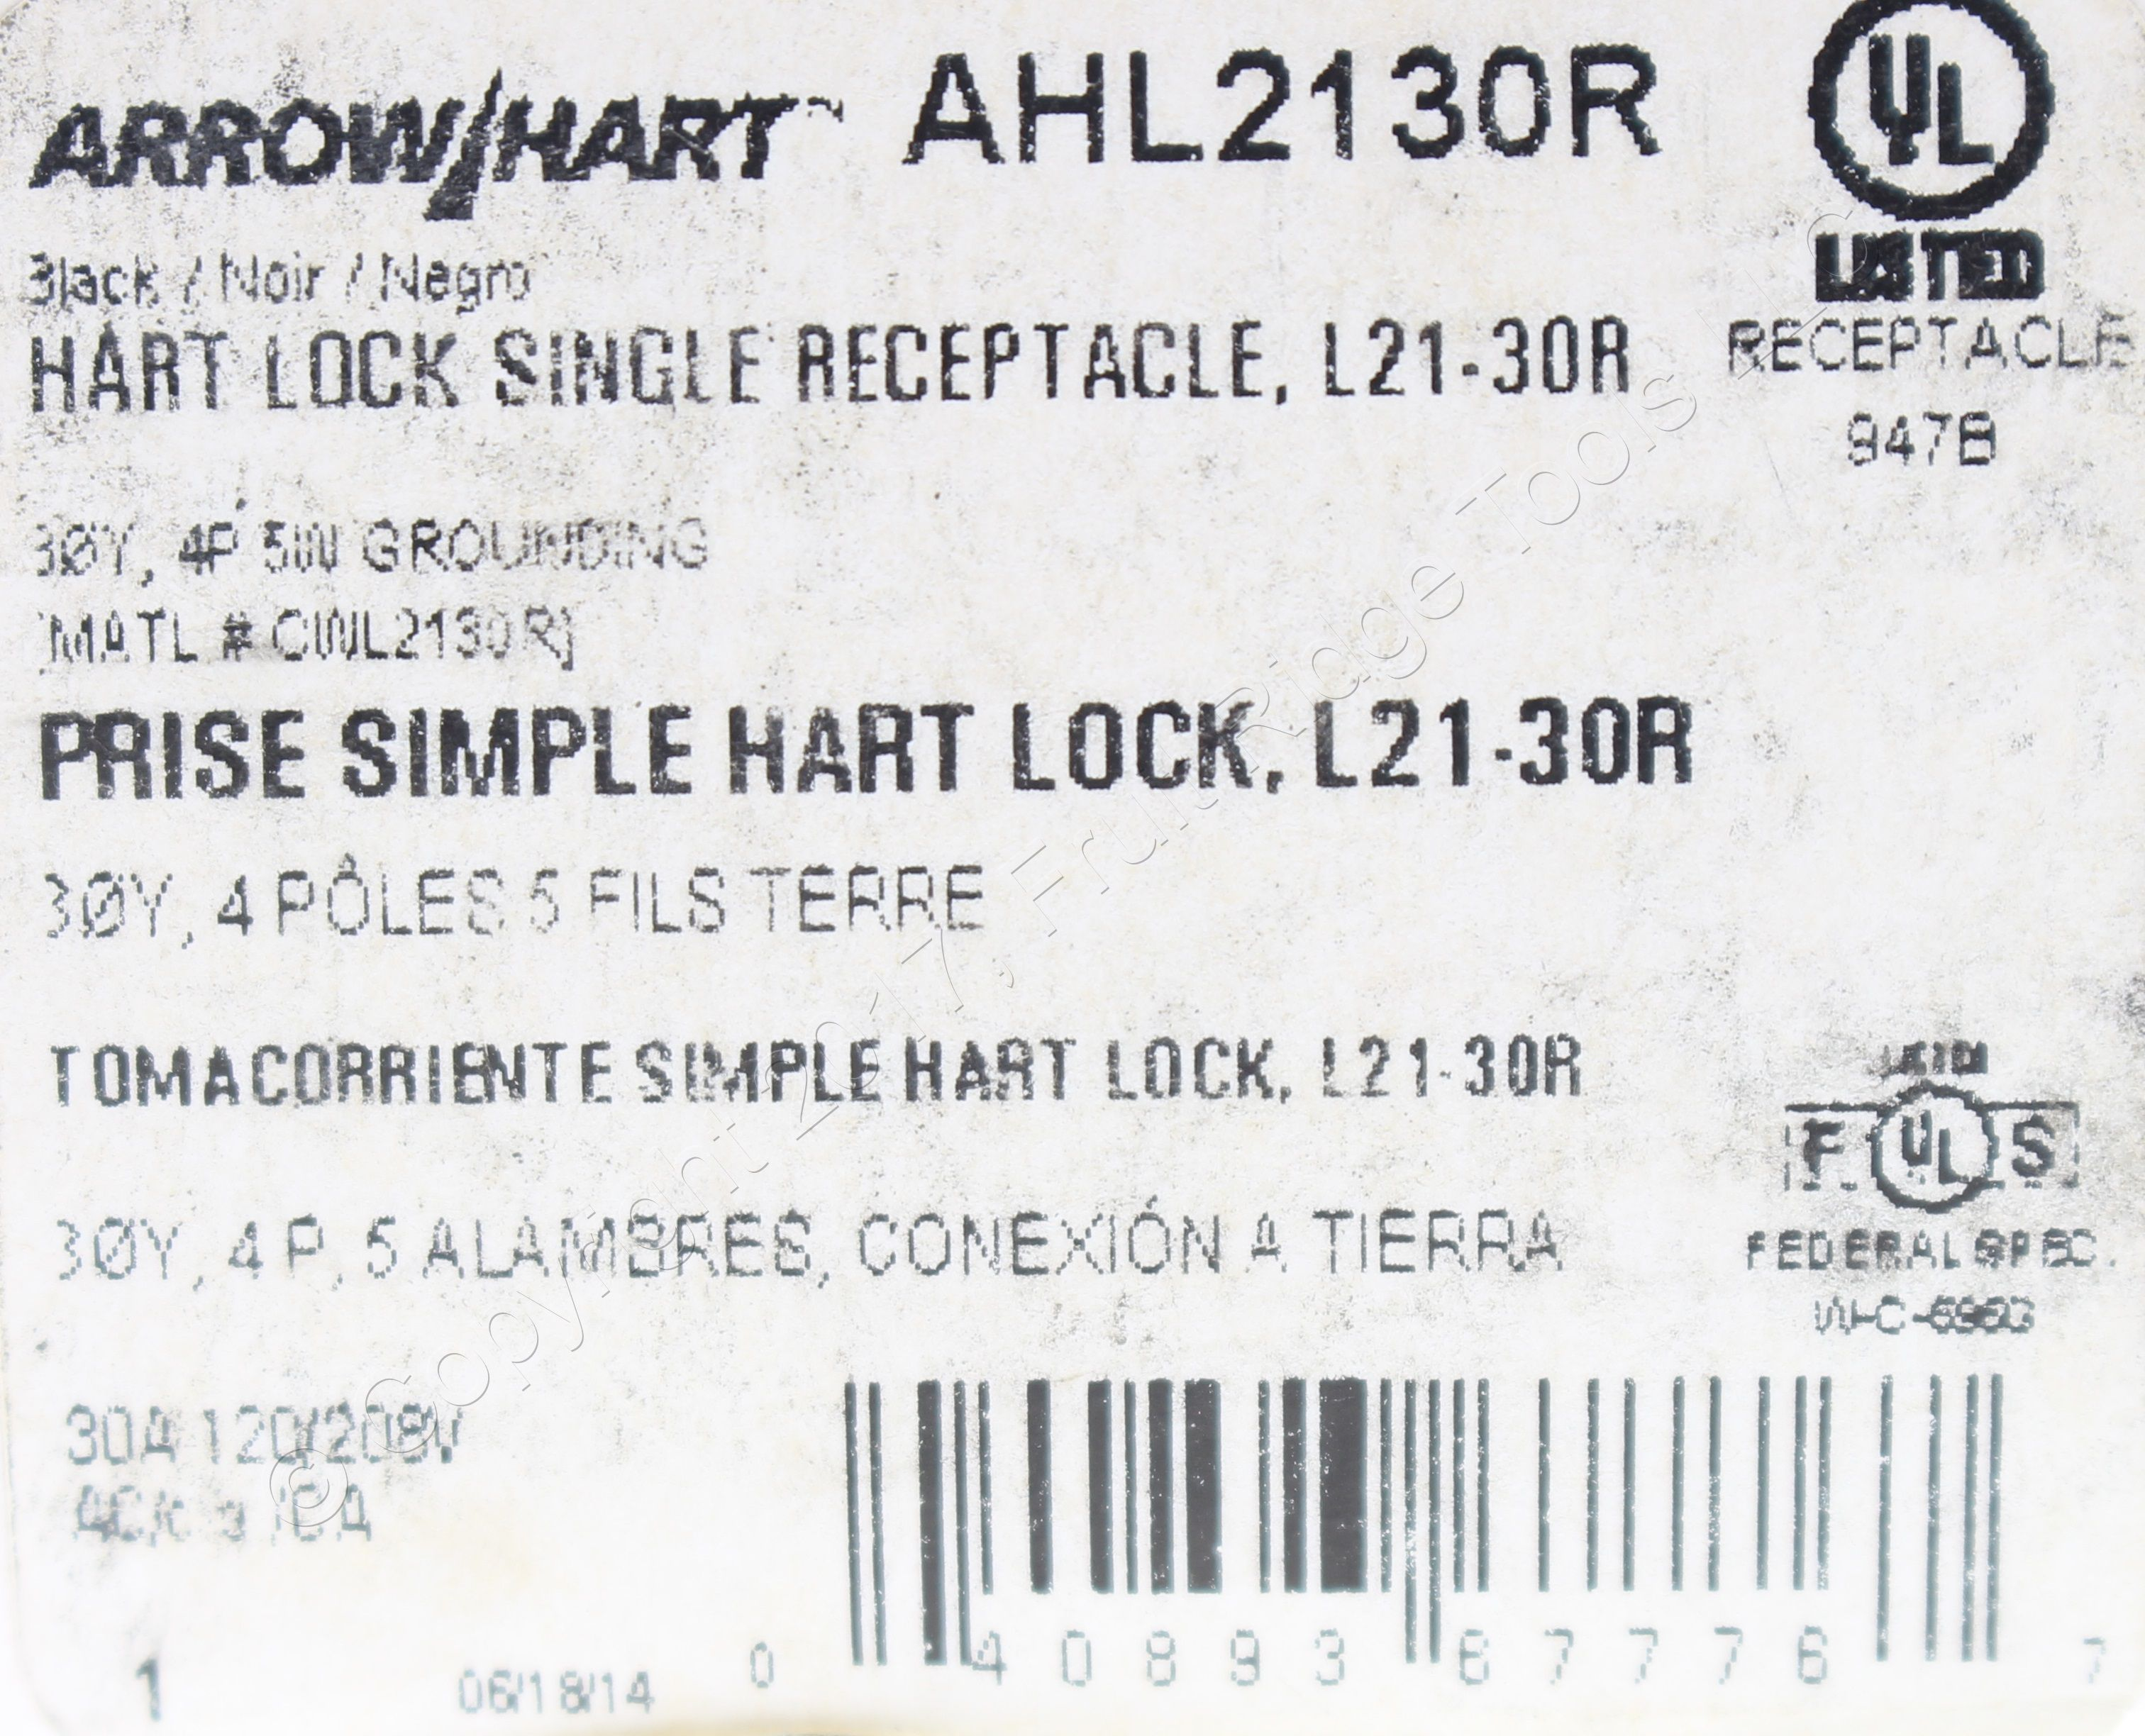 ARROW HART  AHL2130R NEMA L21-30R 30A 120//208V Hart-Lock Locking Receptacle